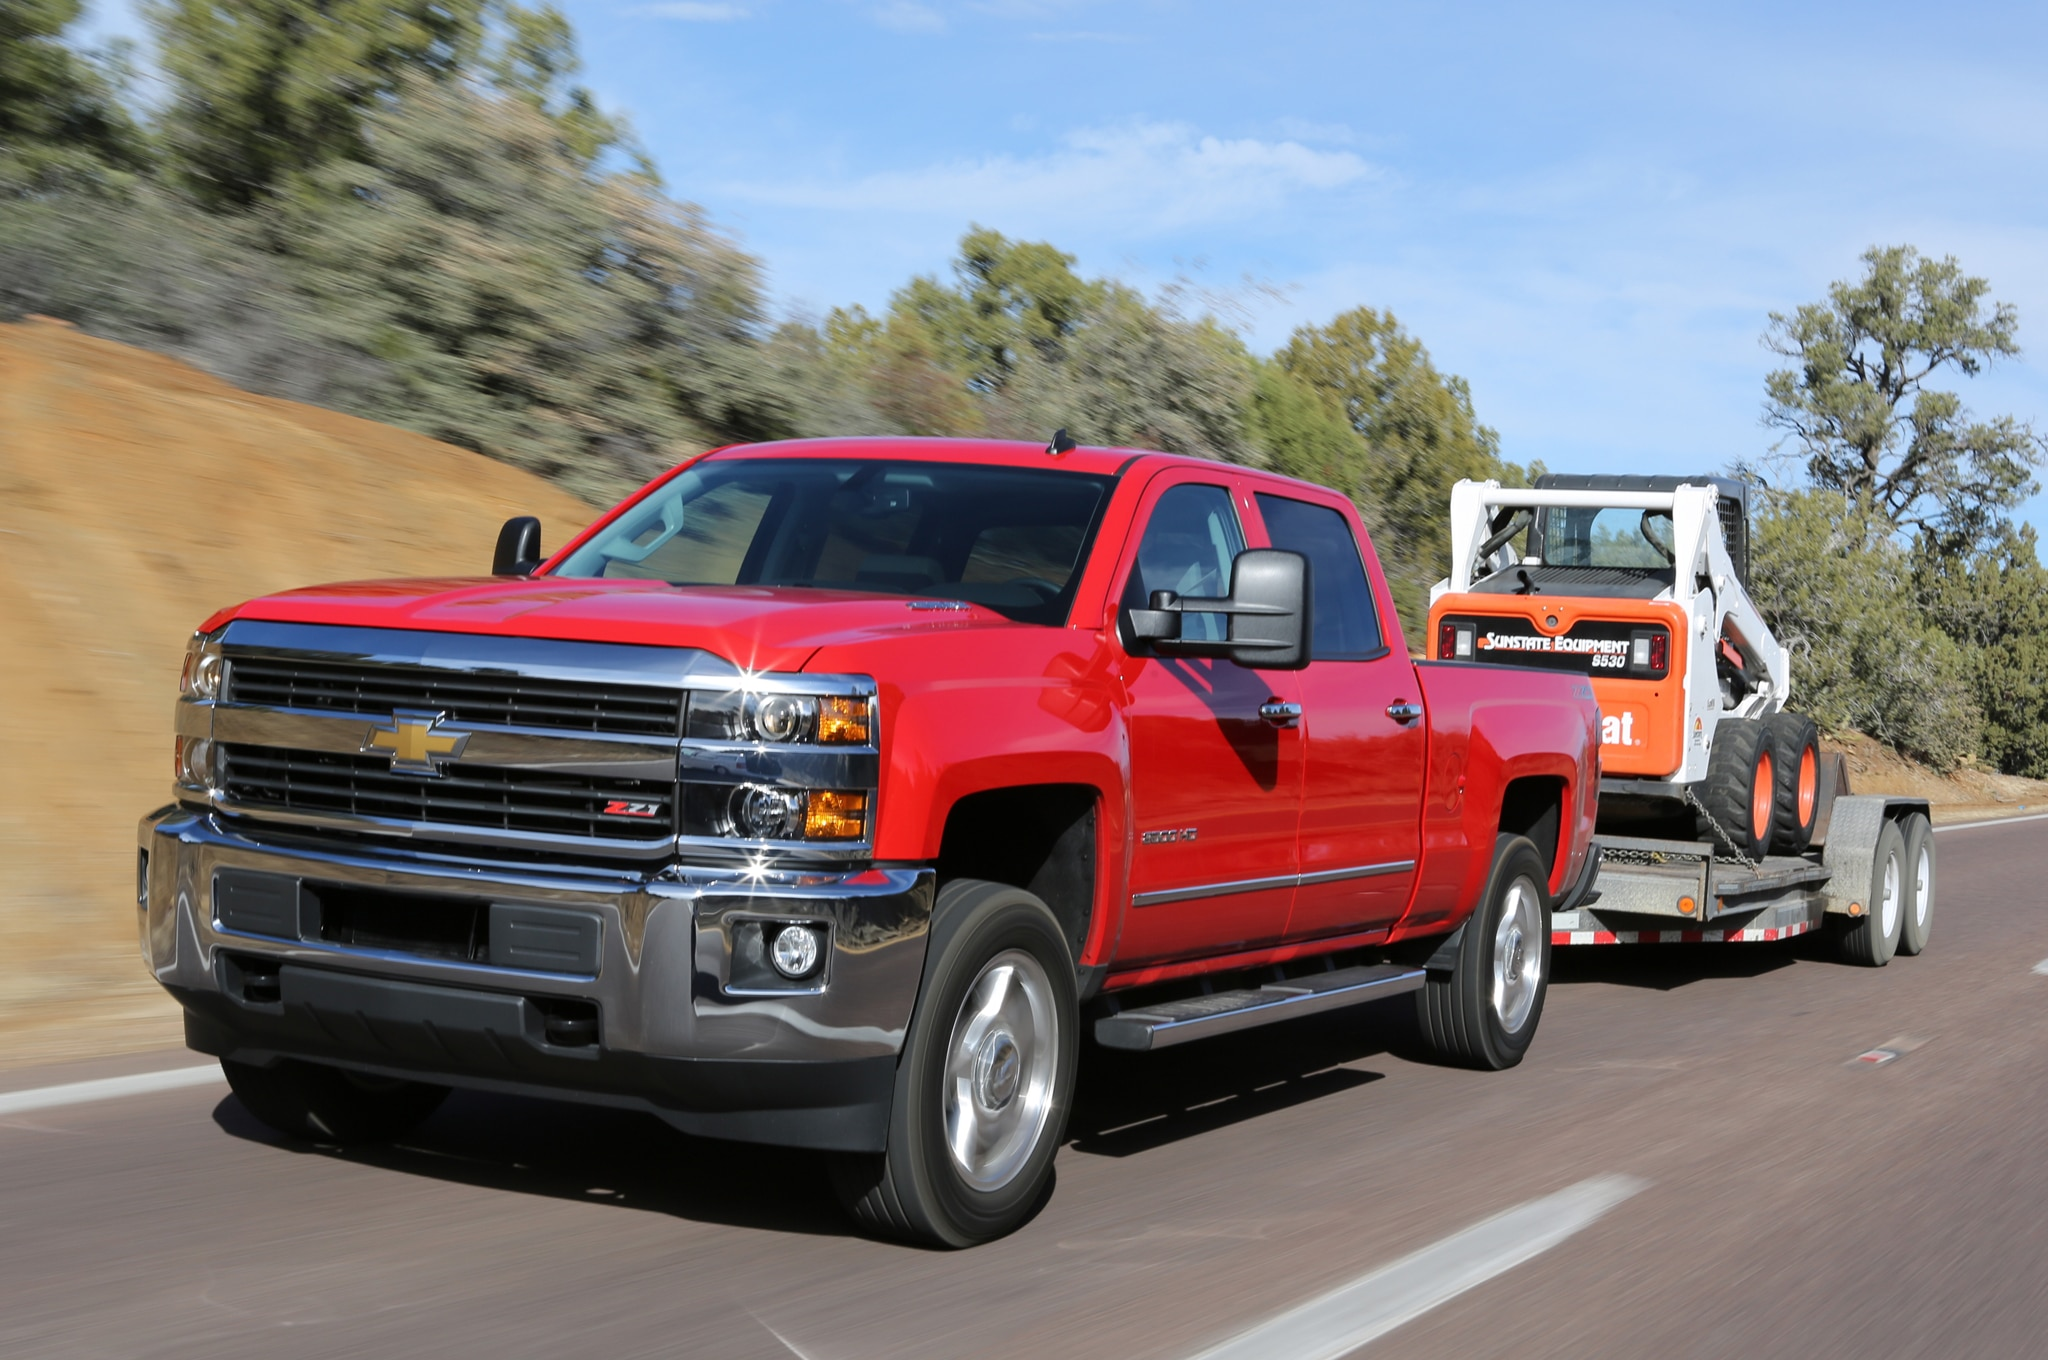 2015 Chevrolet Silverado 2500HD LTZ front view in motion